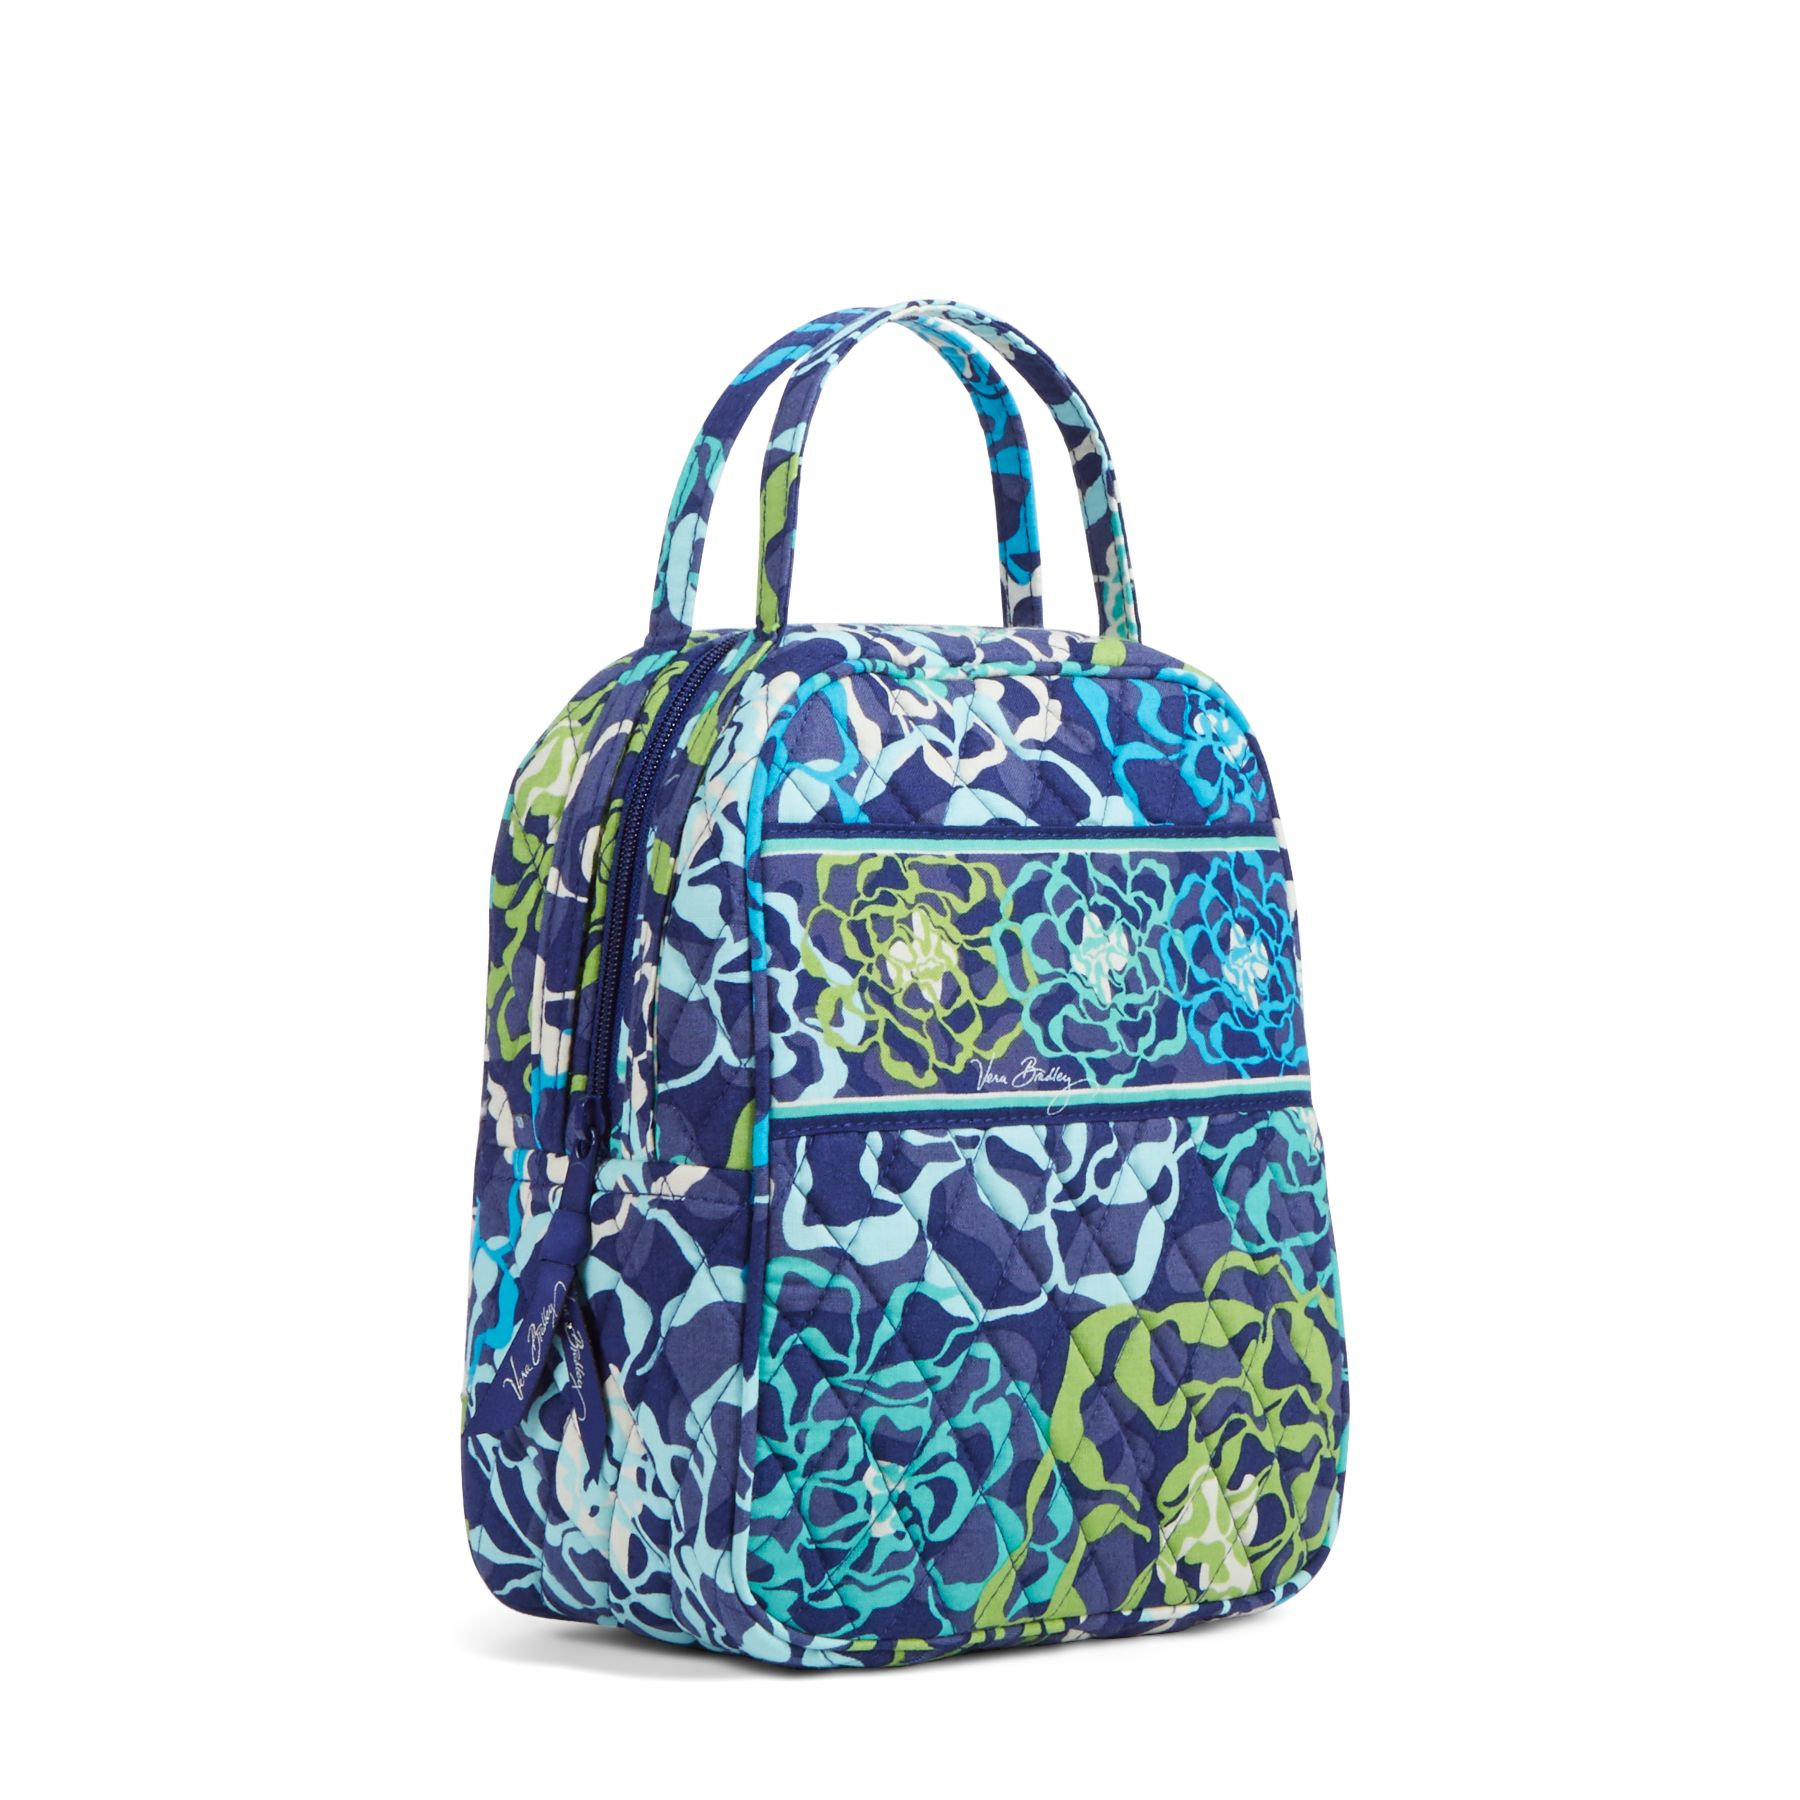 Vera Bradley Lunch Bunch Bag Ebay